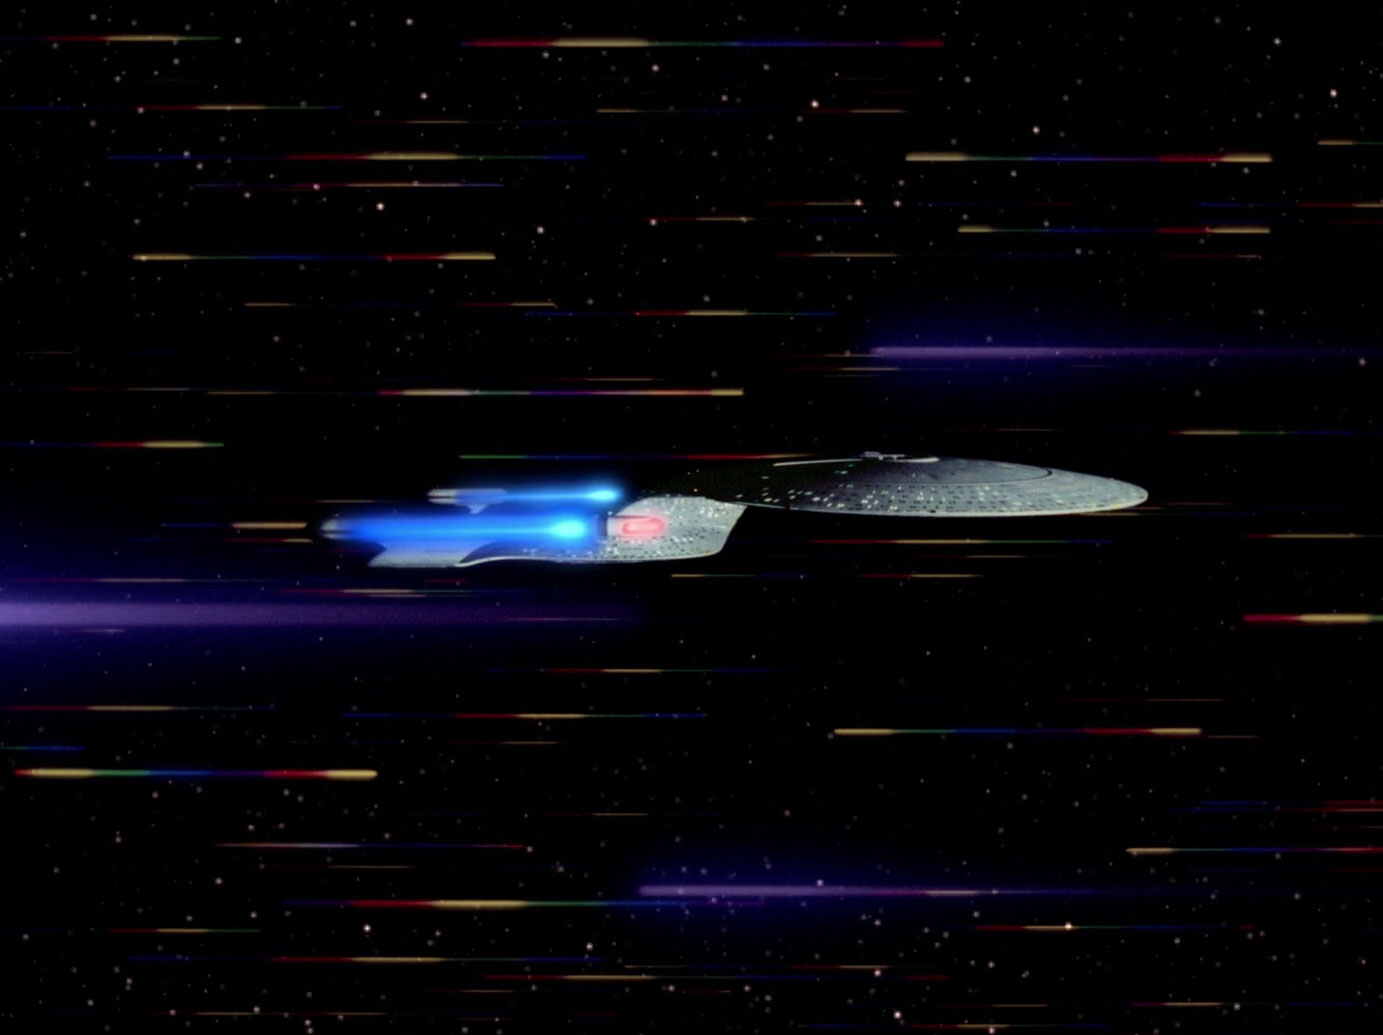 USS Enterprise going to warp in full pro